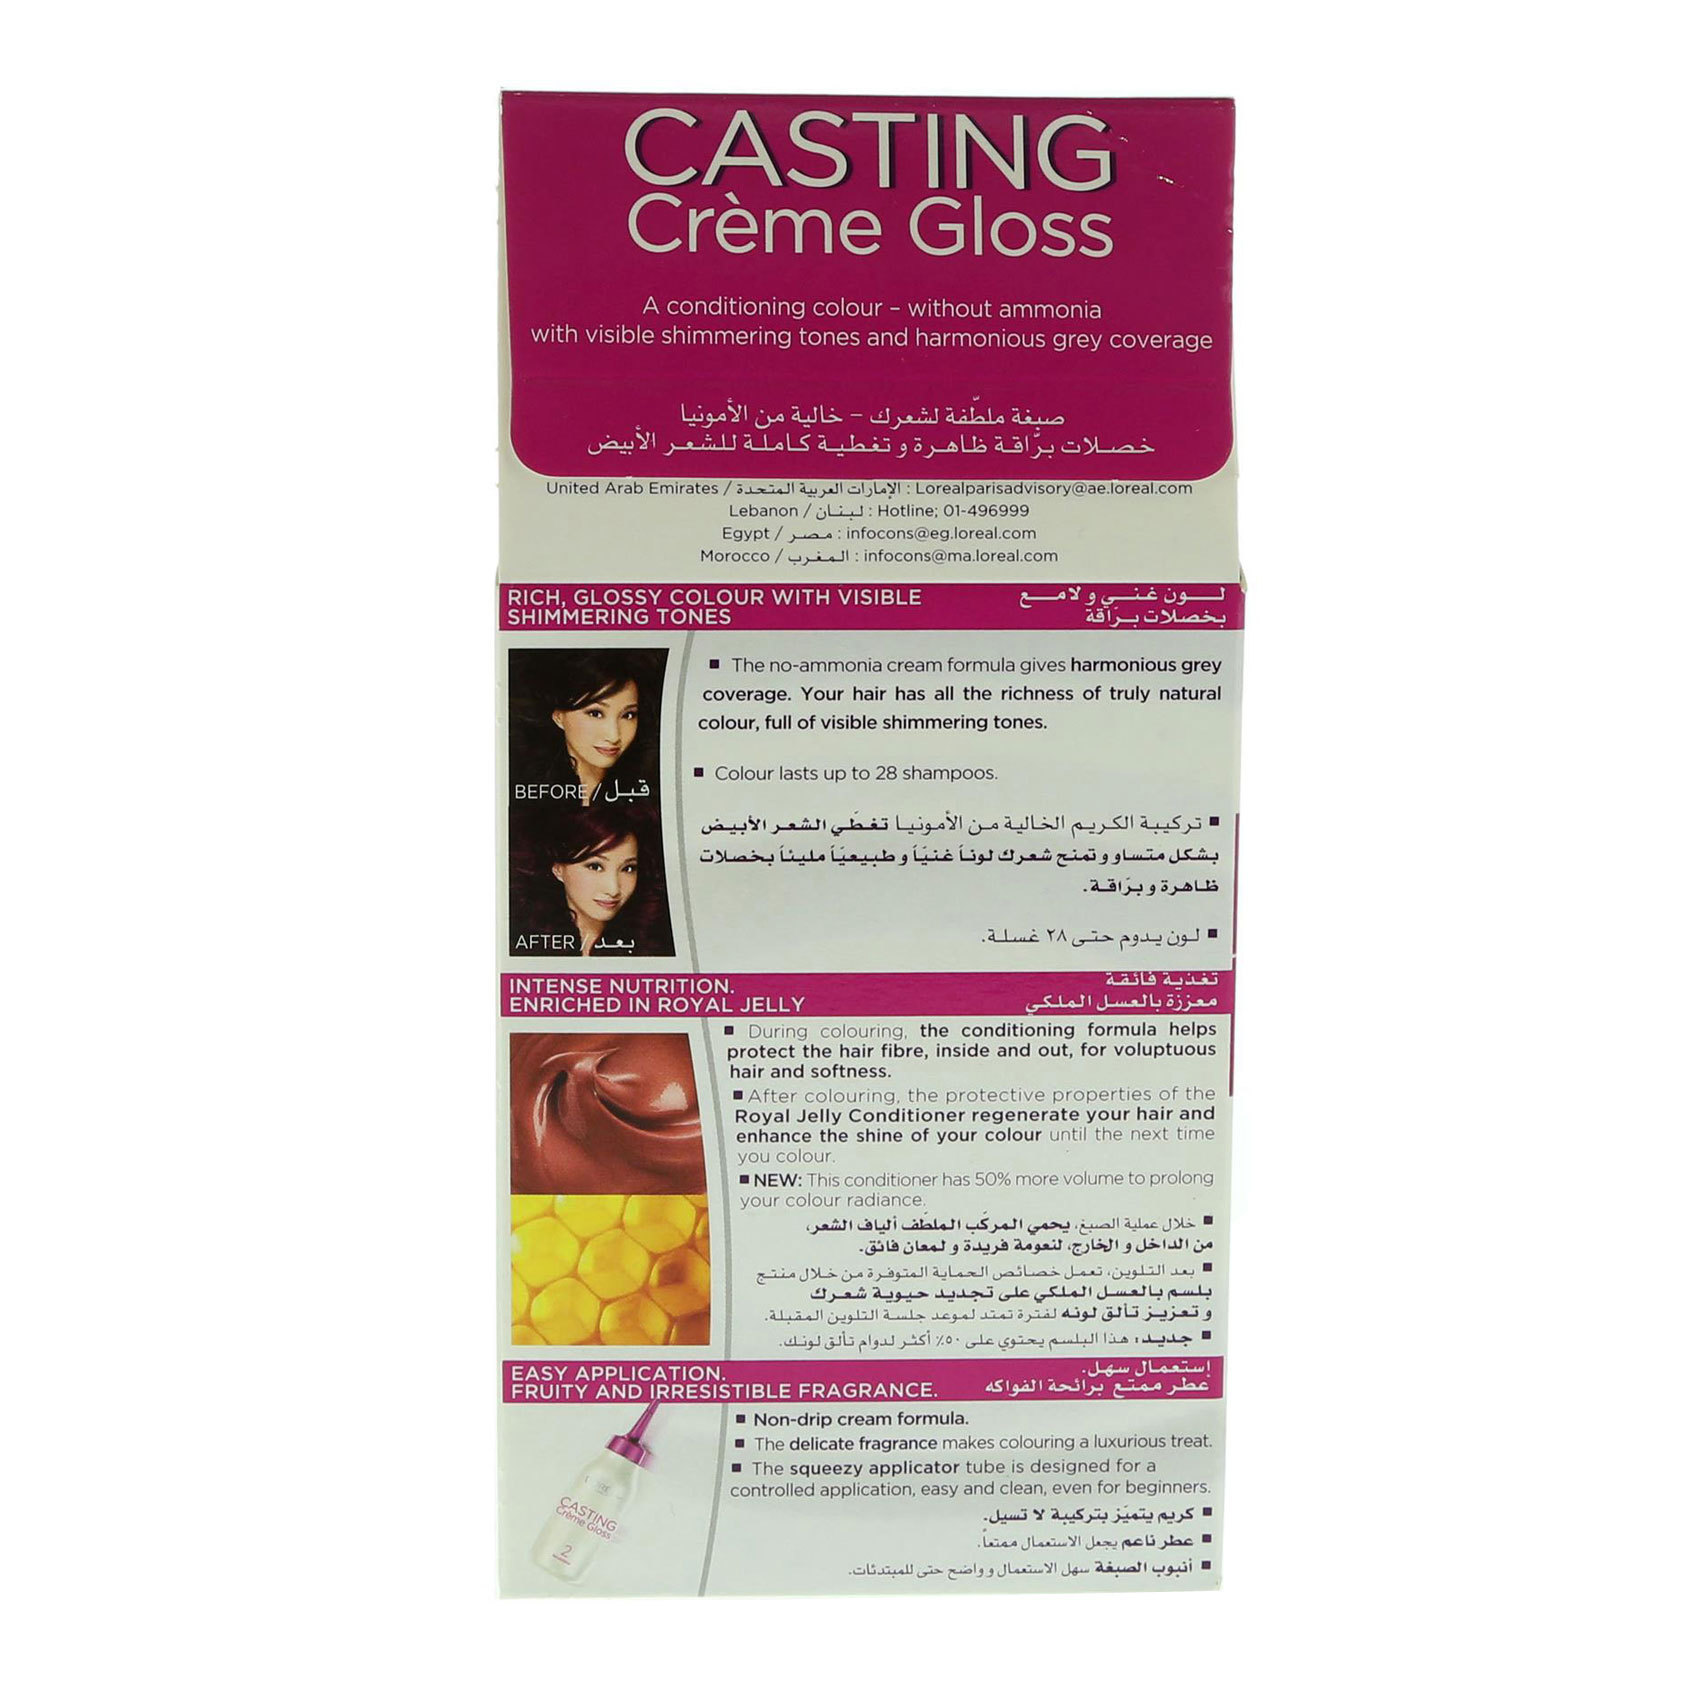 CASTING CREAM GLOSS 360 BLACKCHERRY